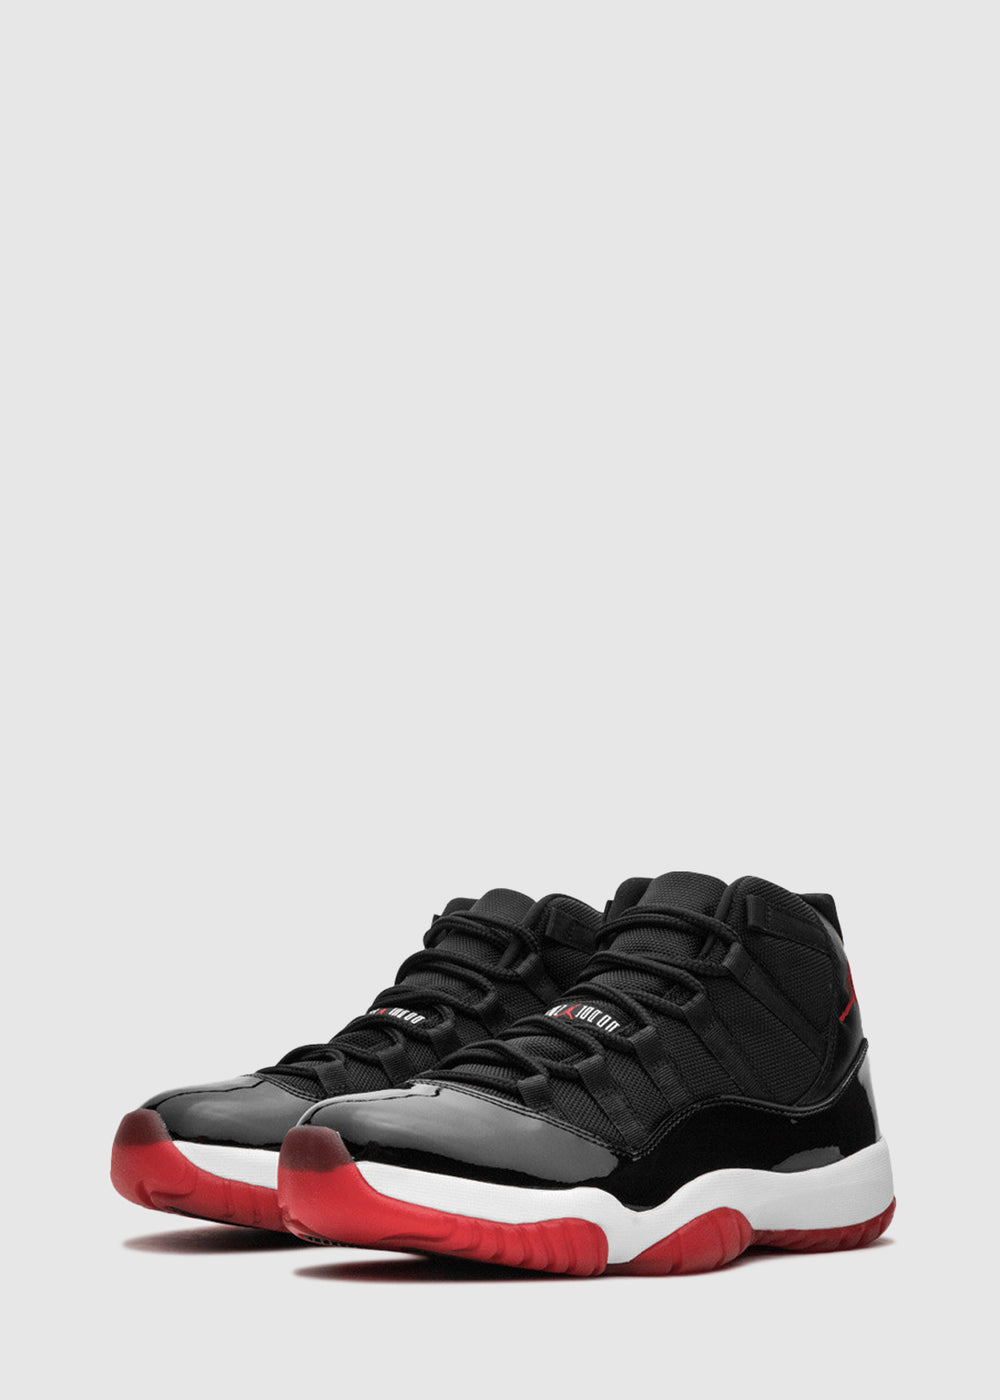 jordan-air-jordan-11-bred-black-2